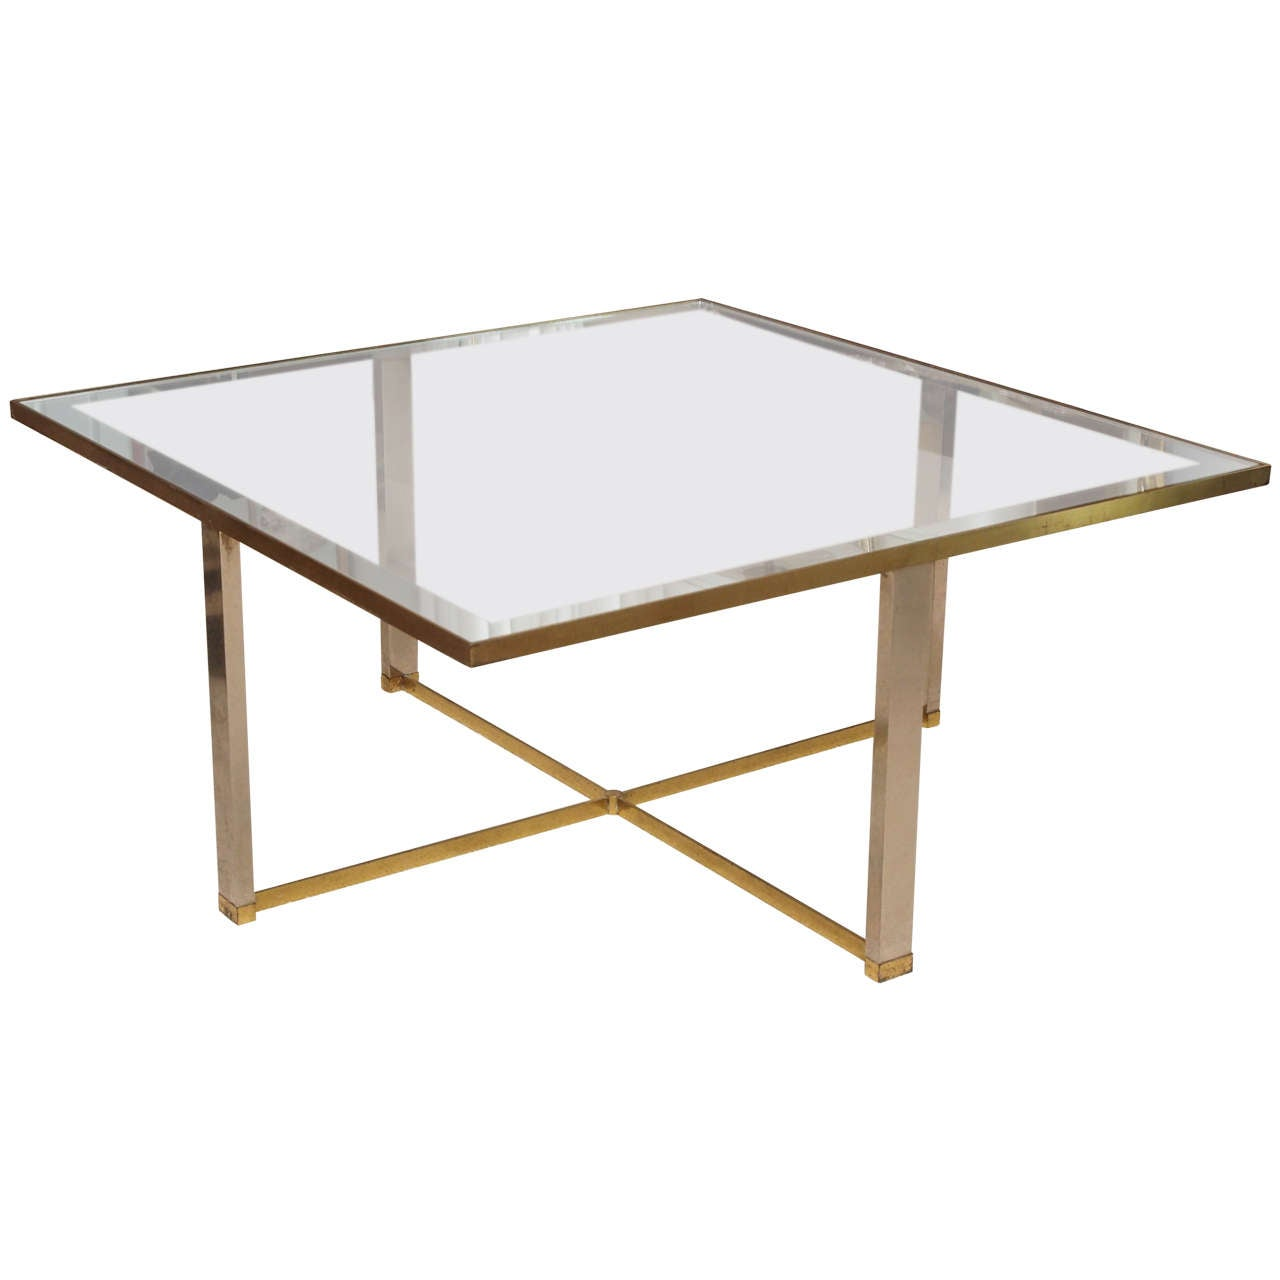 Minimalist cocktail table in brass and glass at 1stdibs for Minimalist coffee table